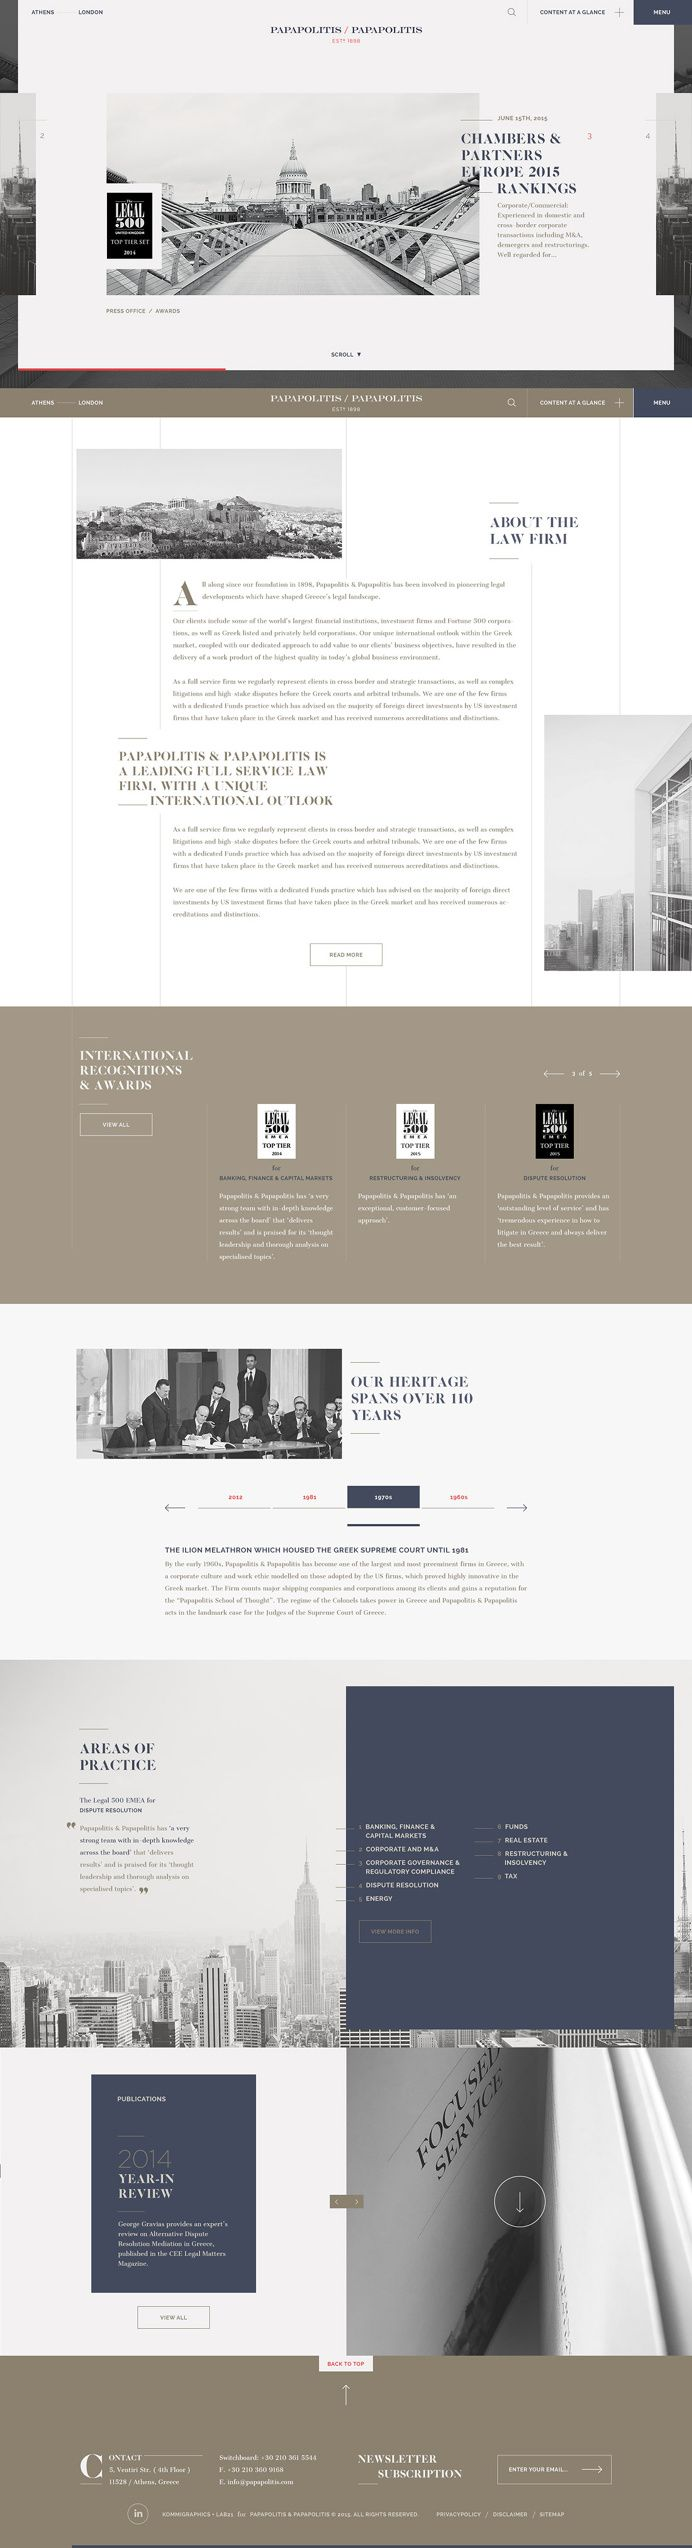 Papapolitis Website By Kommigraphics Design Image Management In Web